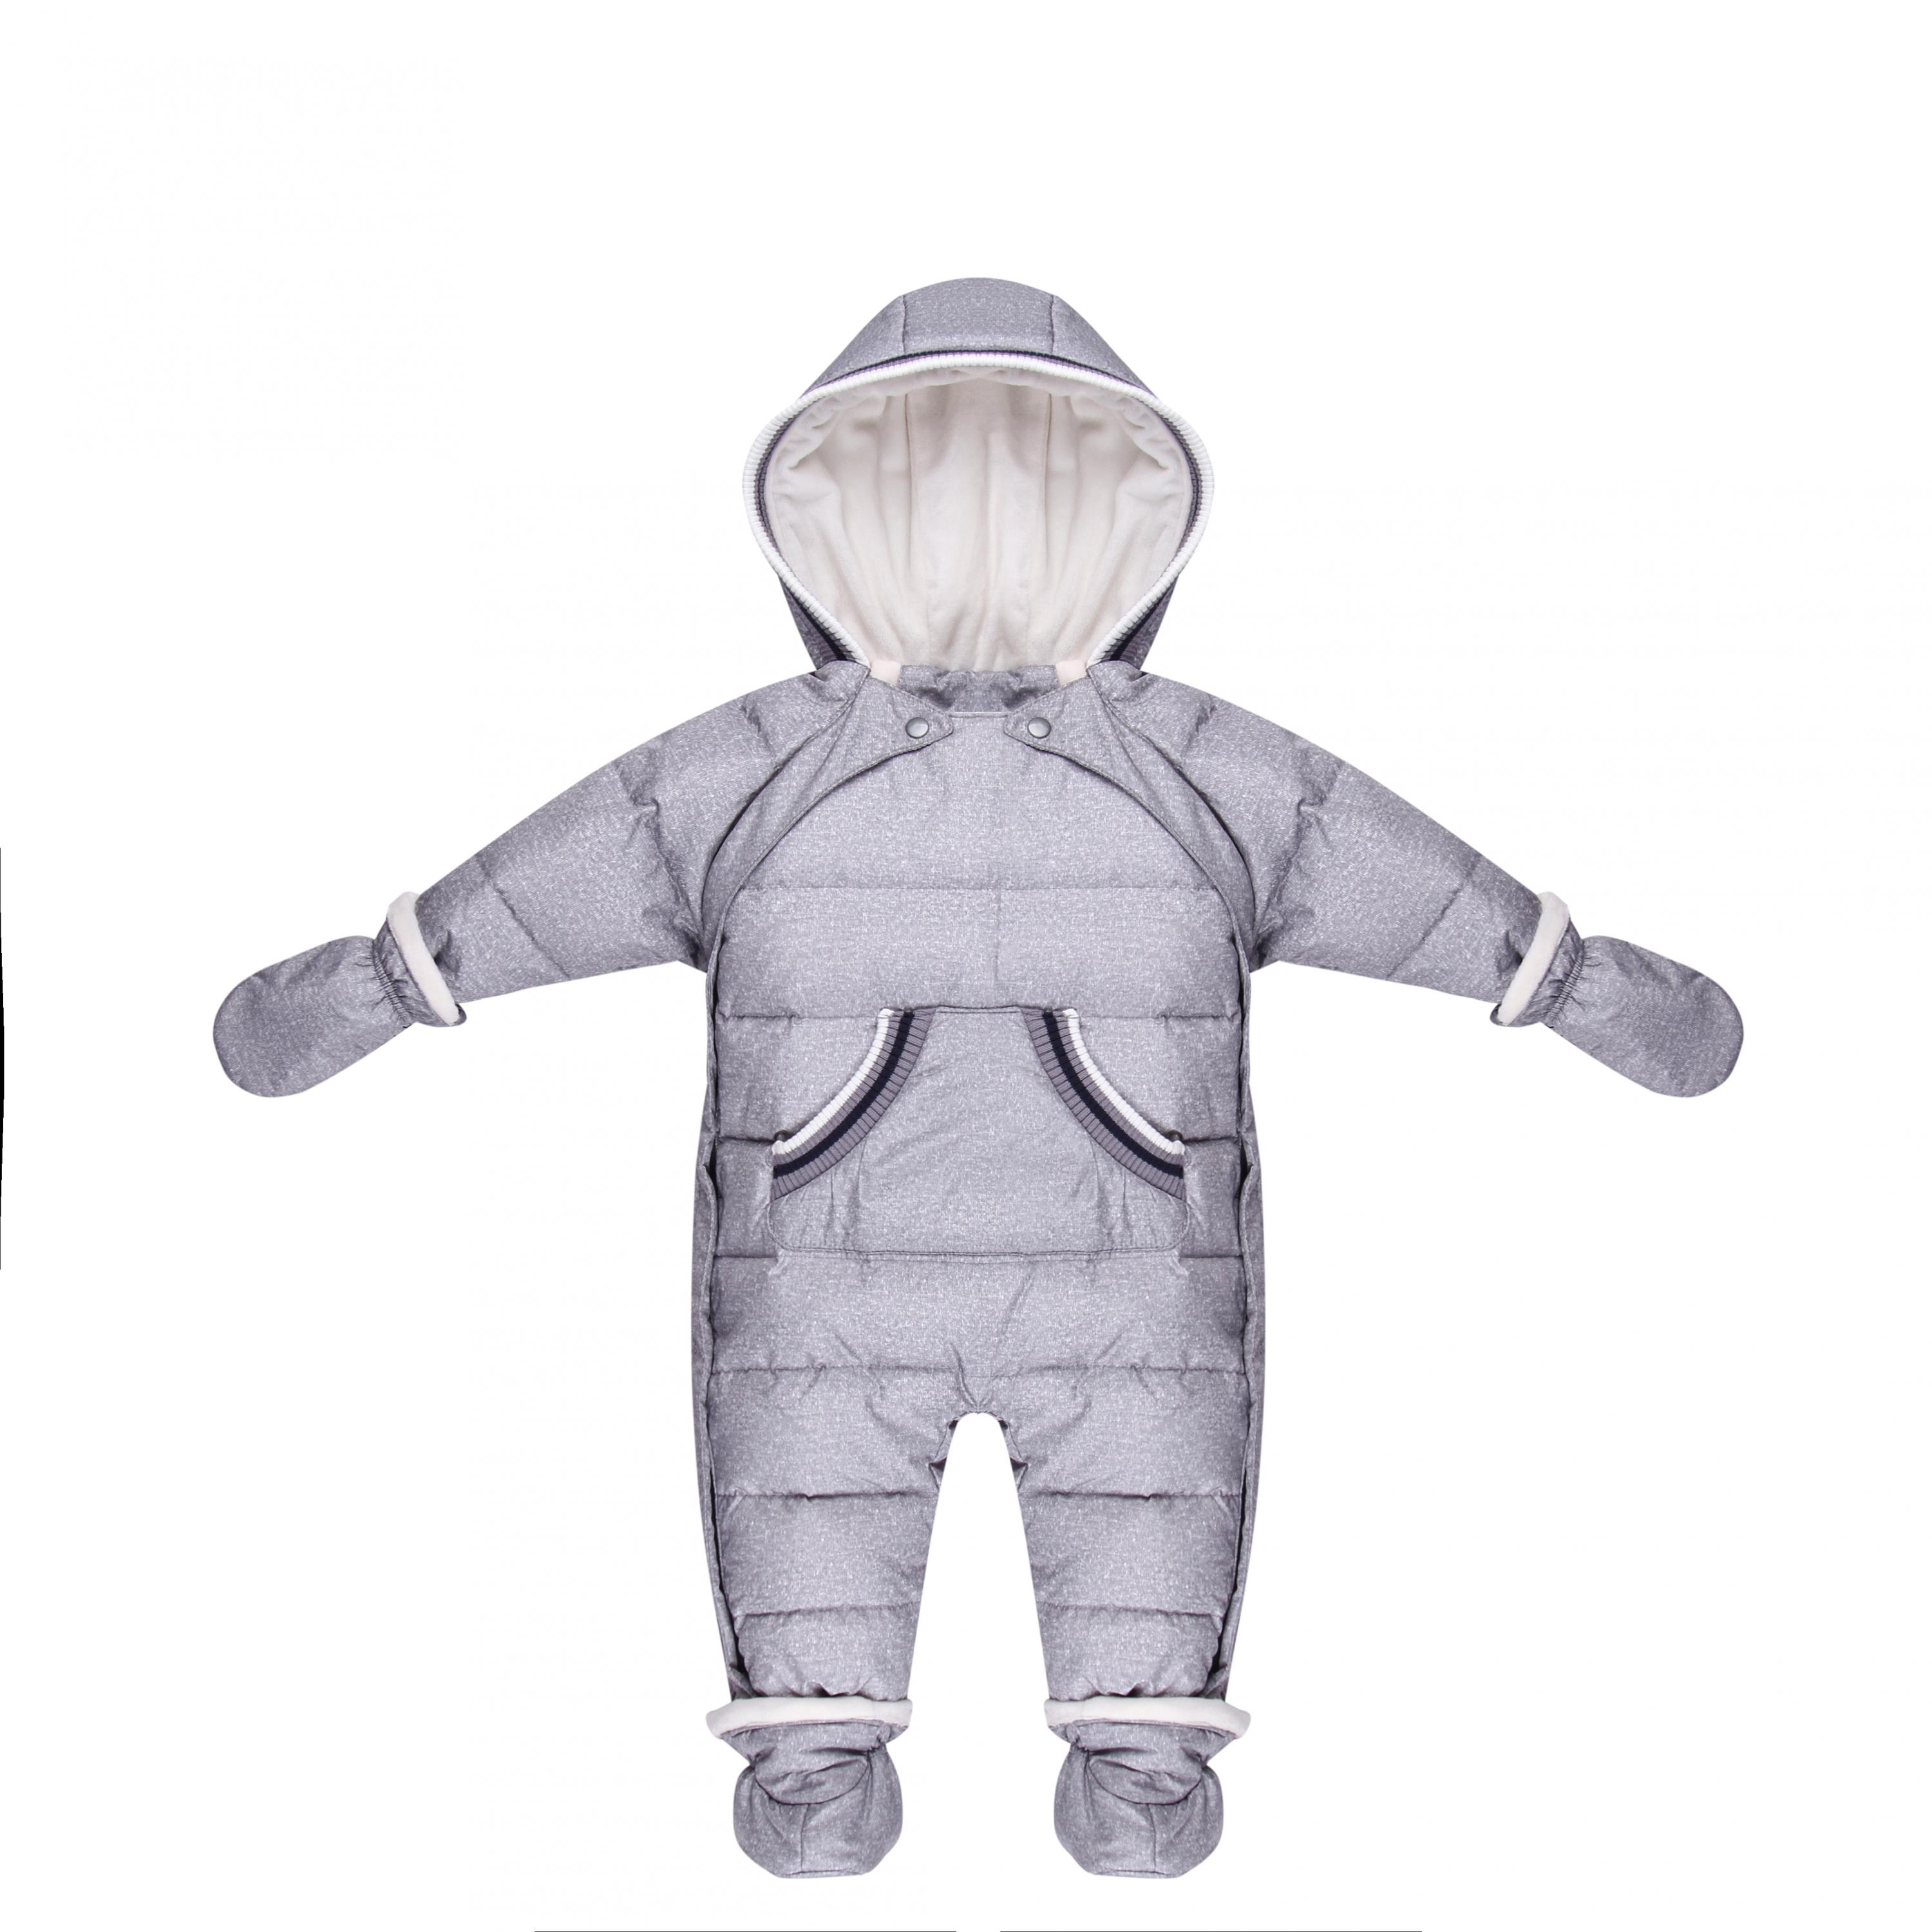 2018 new infant coats winter baby outwear & coats soft and thicken snowsuit baby overalls 3M-24M newborn fleece jacket jumpsuits